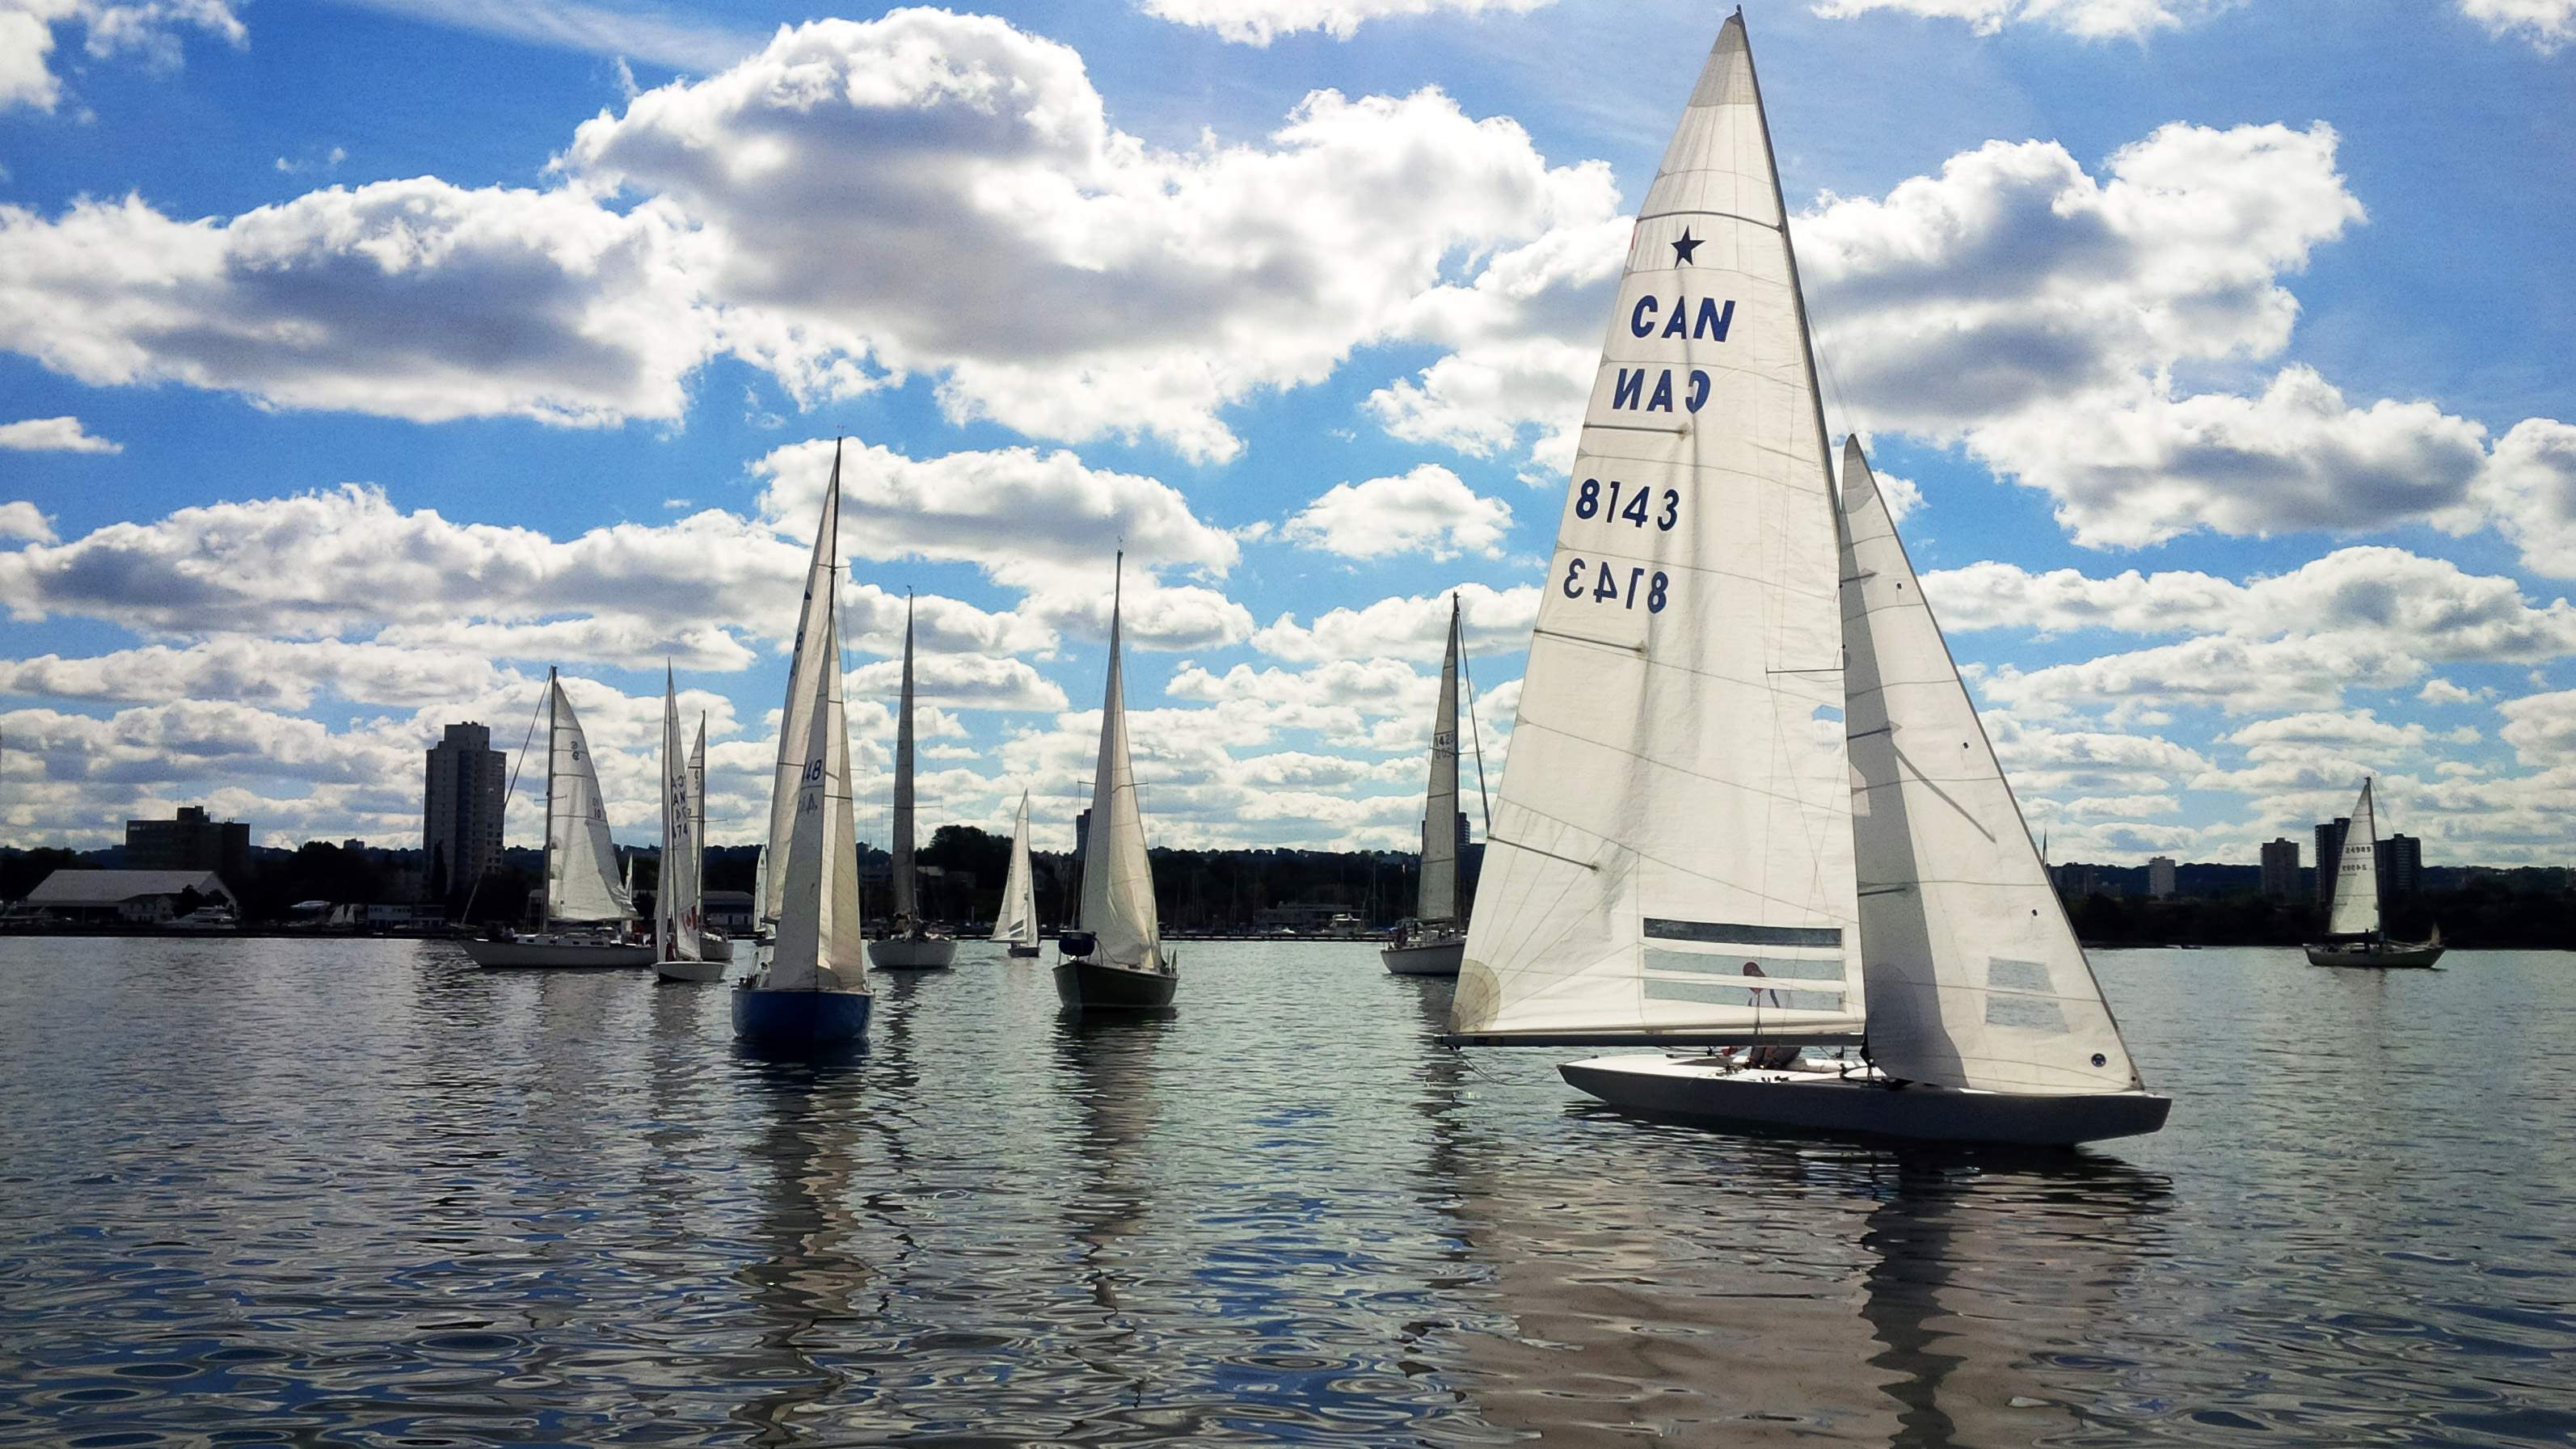 Sailboats at Royal Hamilton Yacht Club out on the lake. Sunny day with clouds.